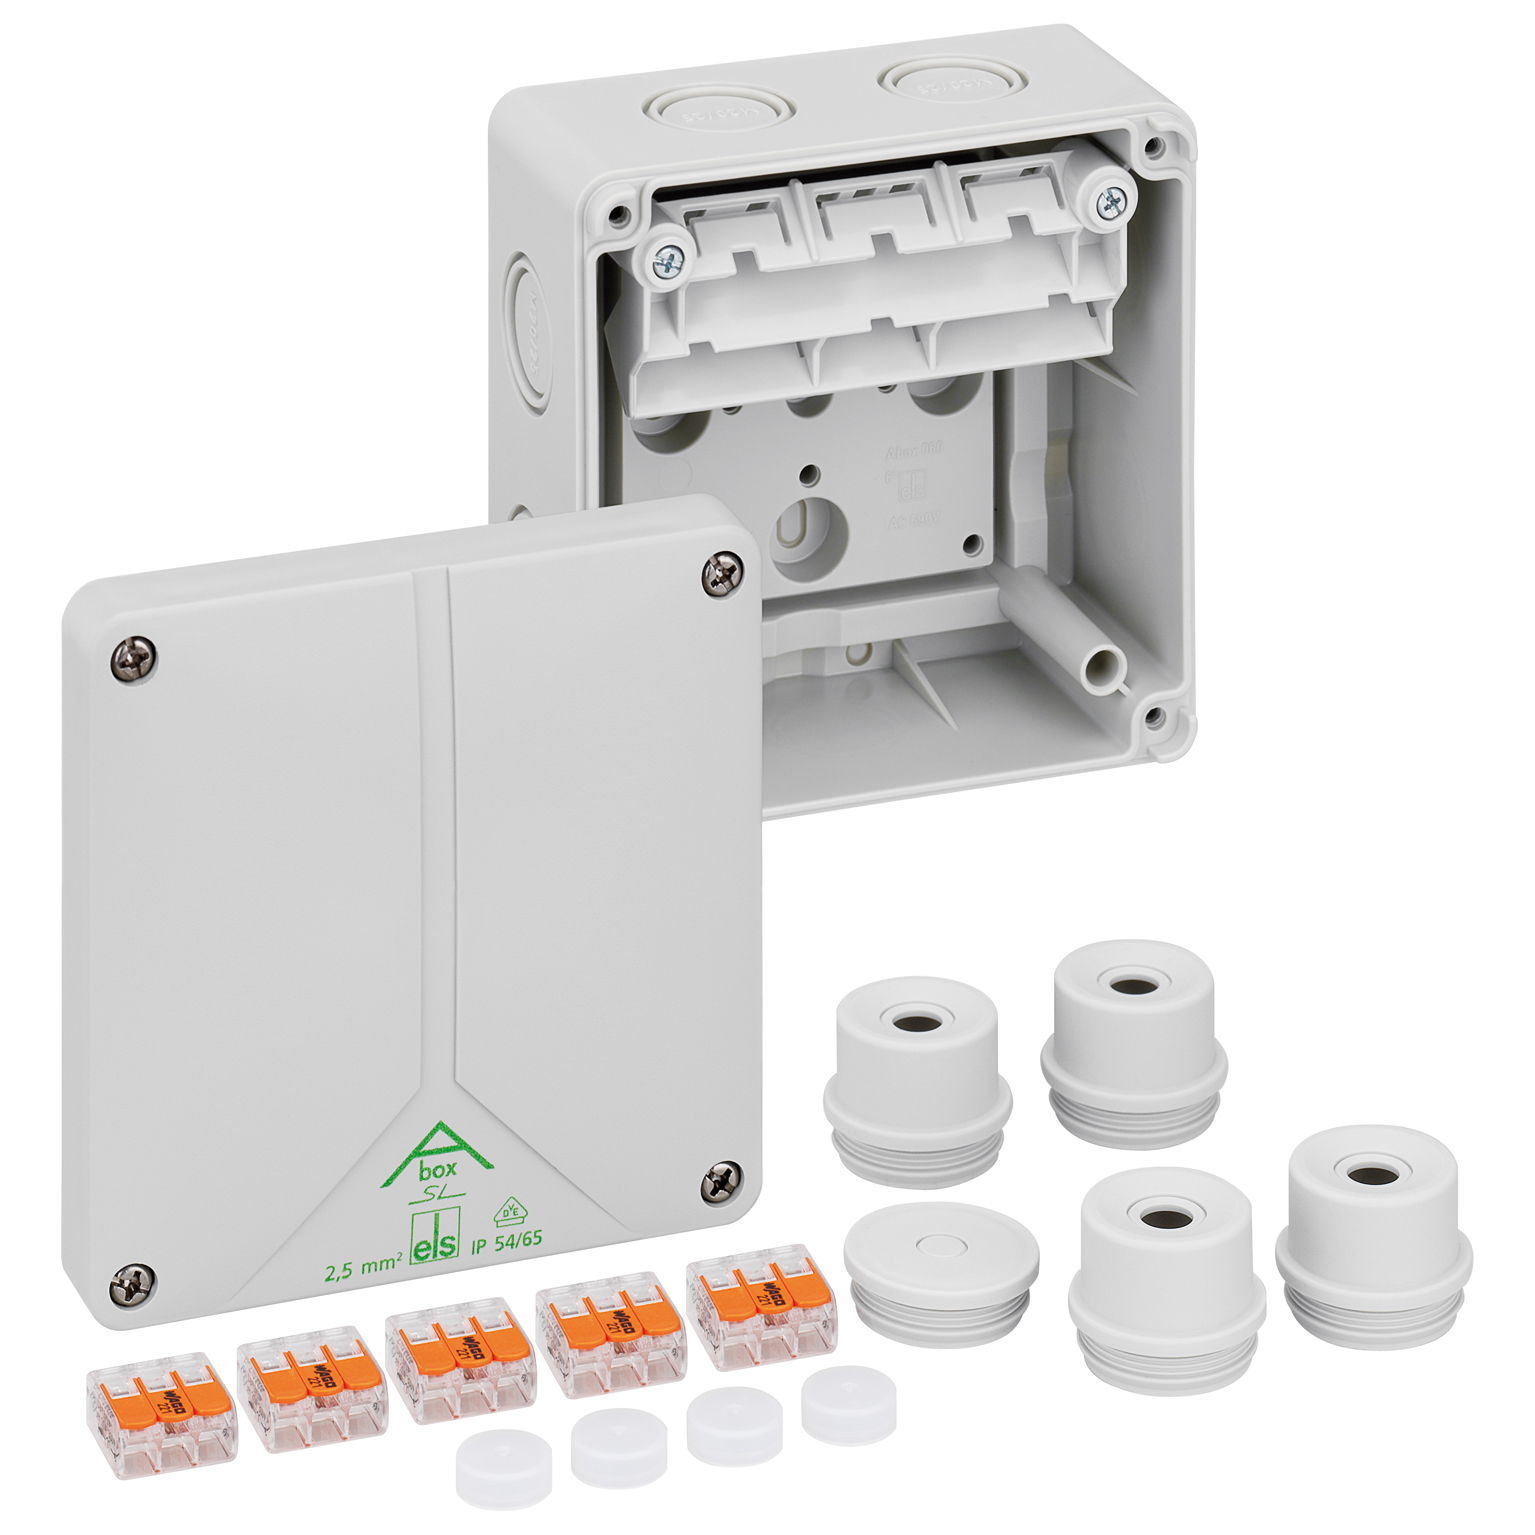 Electrical enclosures now coming with increasing added value